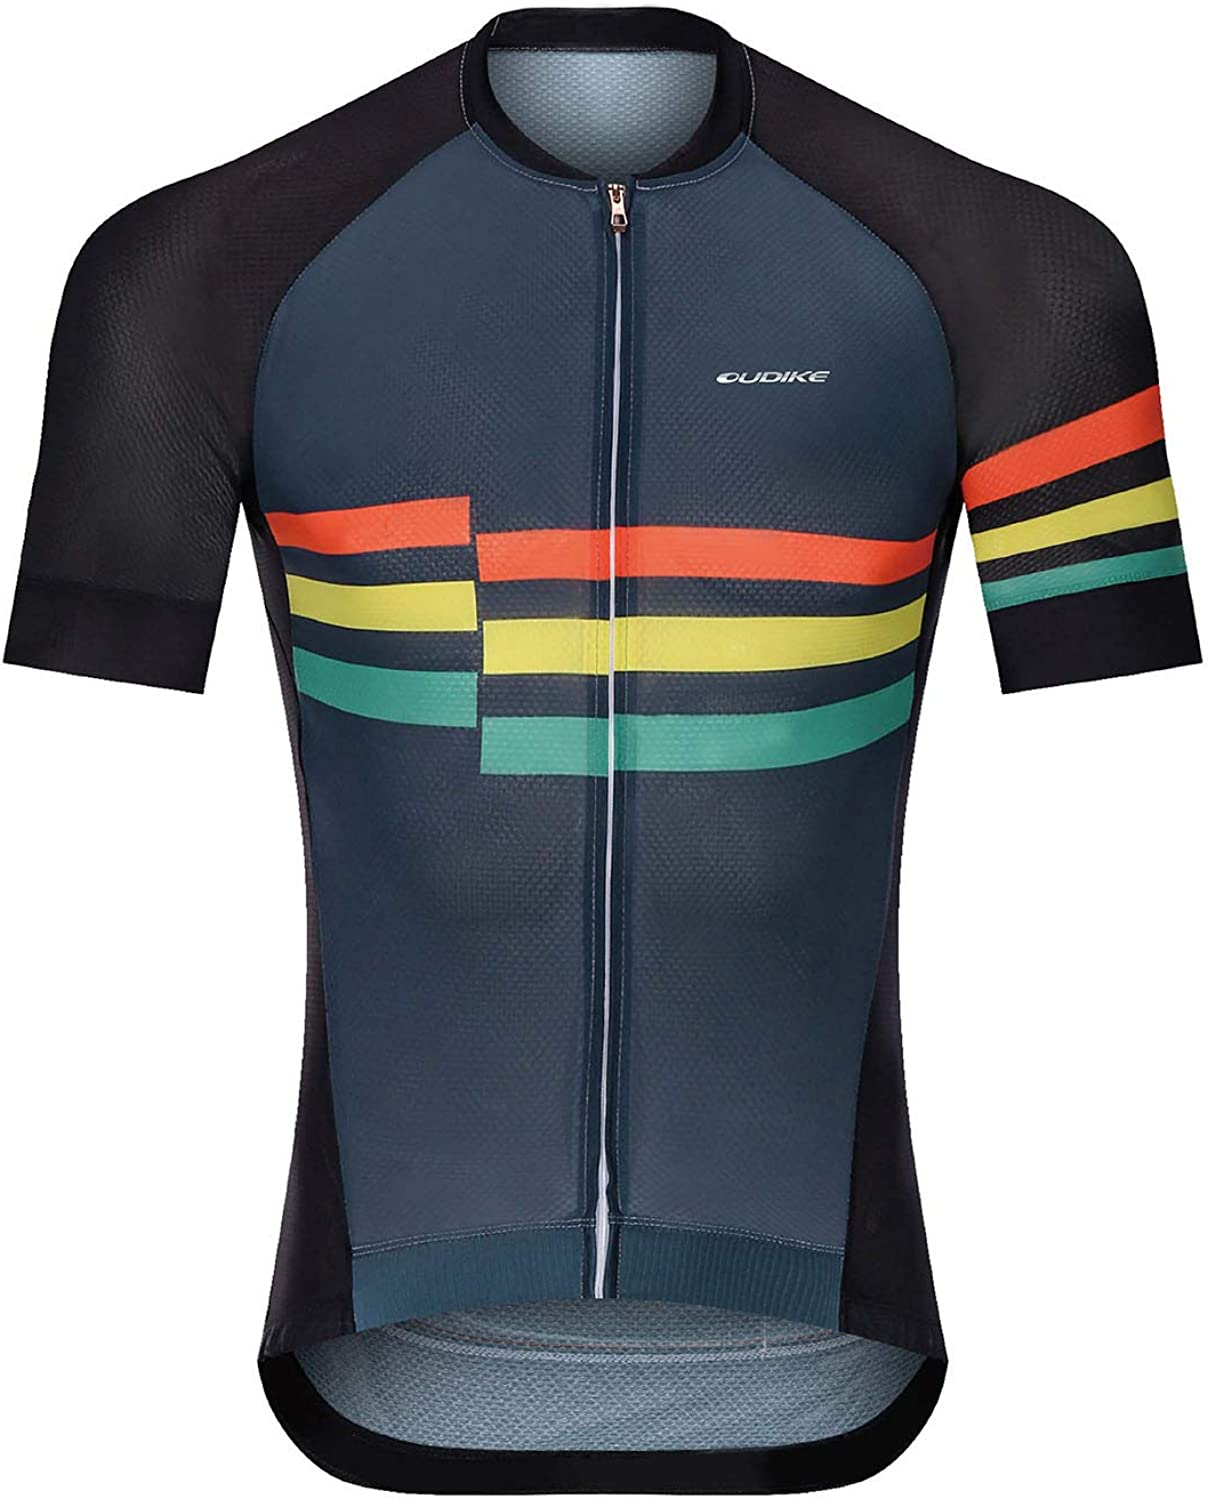 Men's Cycling Jersey Short Sleeve Breathable Quick Dry Biking Shirt Full Zip Cycling Jersey Tops with Pockets